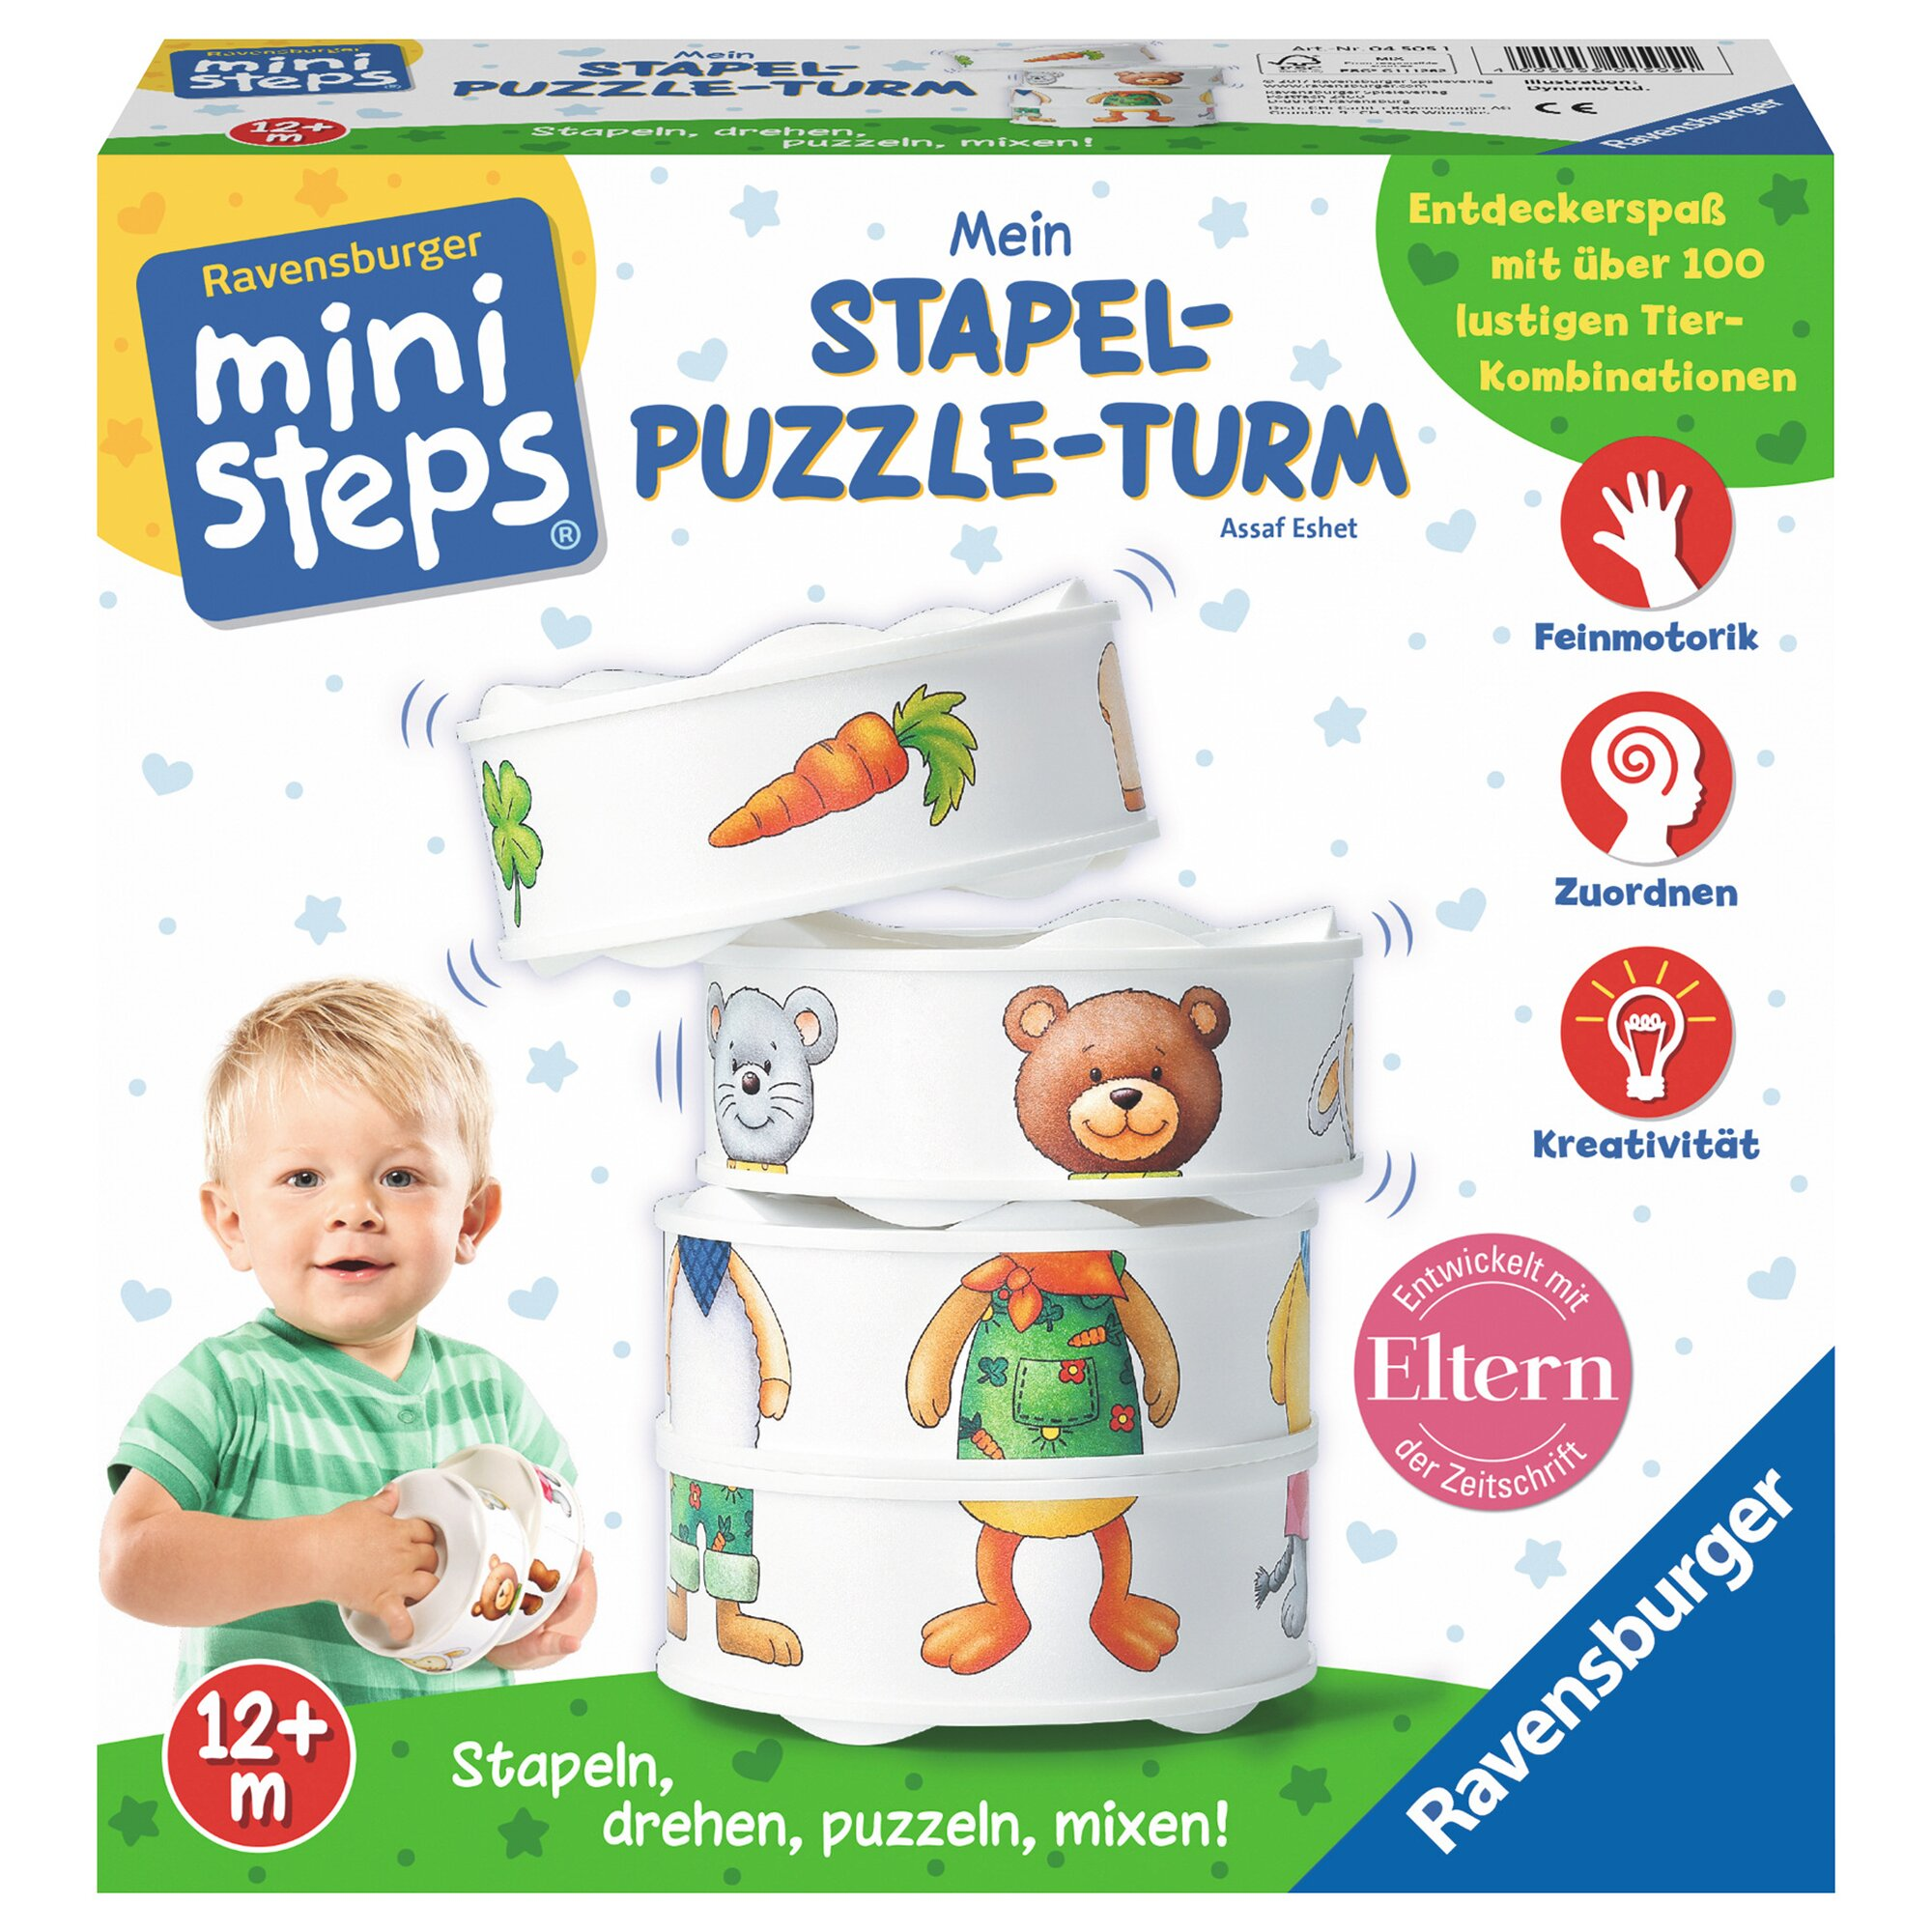 ministeps-mein-stapel-puzzle-turm